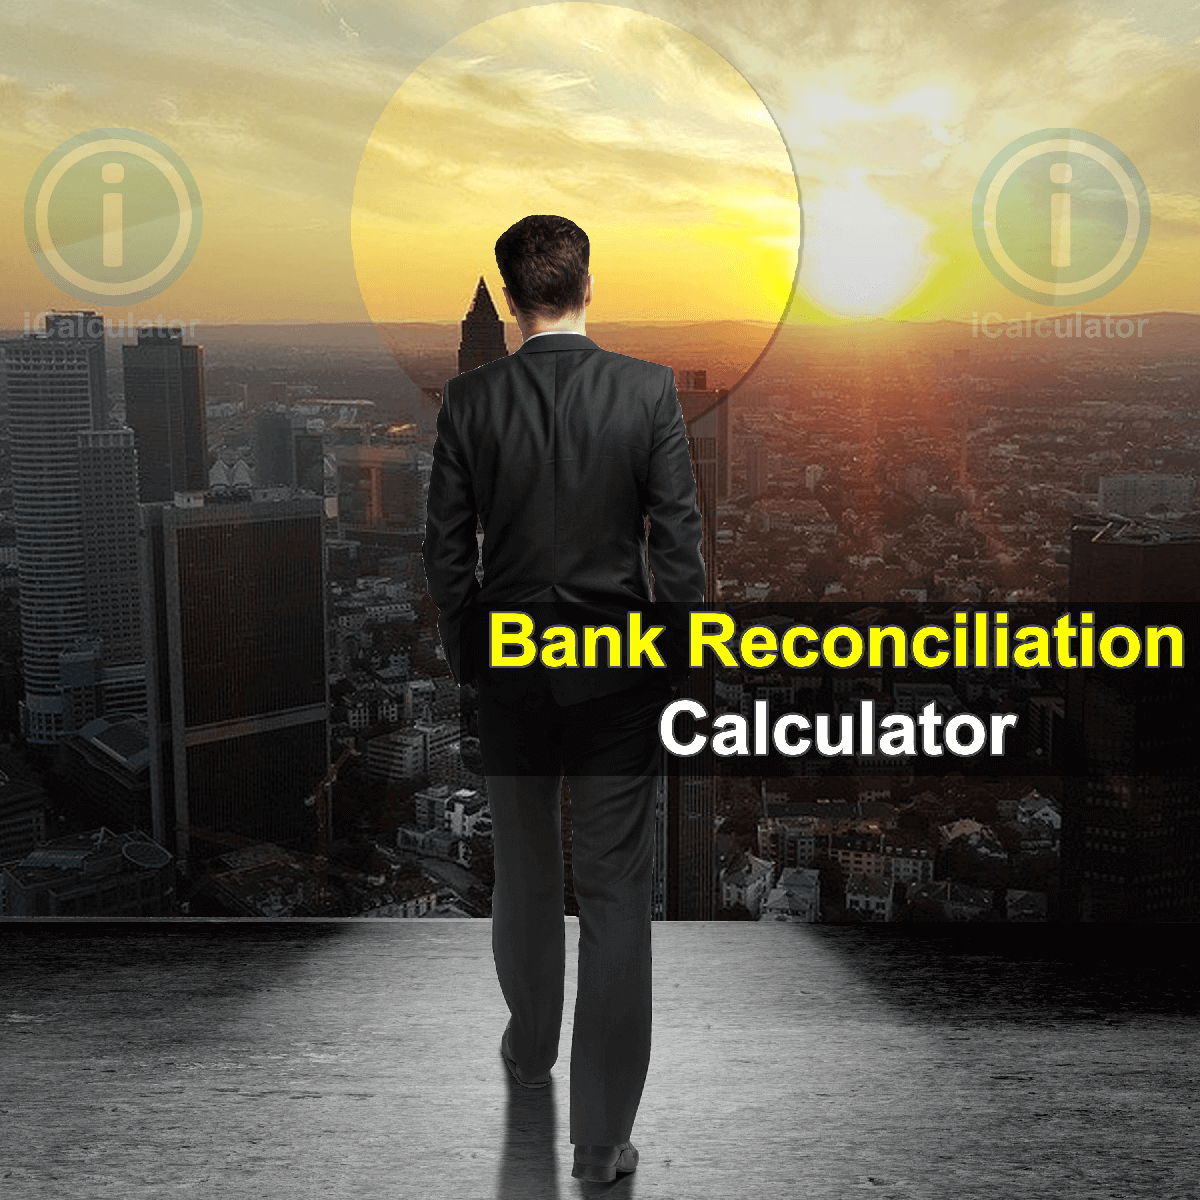 Bank Reconciliation Calculator: This image shows a company director calculating the reconciliation of accounts manually. The Bank Reconciliation Calculator allows you to explain the difference between the bank balance shown in a bank statement and the corresponding amount shown in your own accounting records.